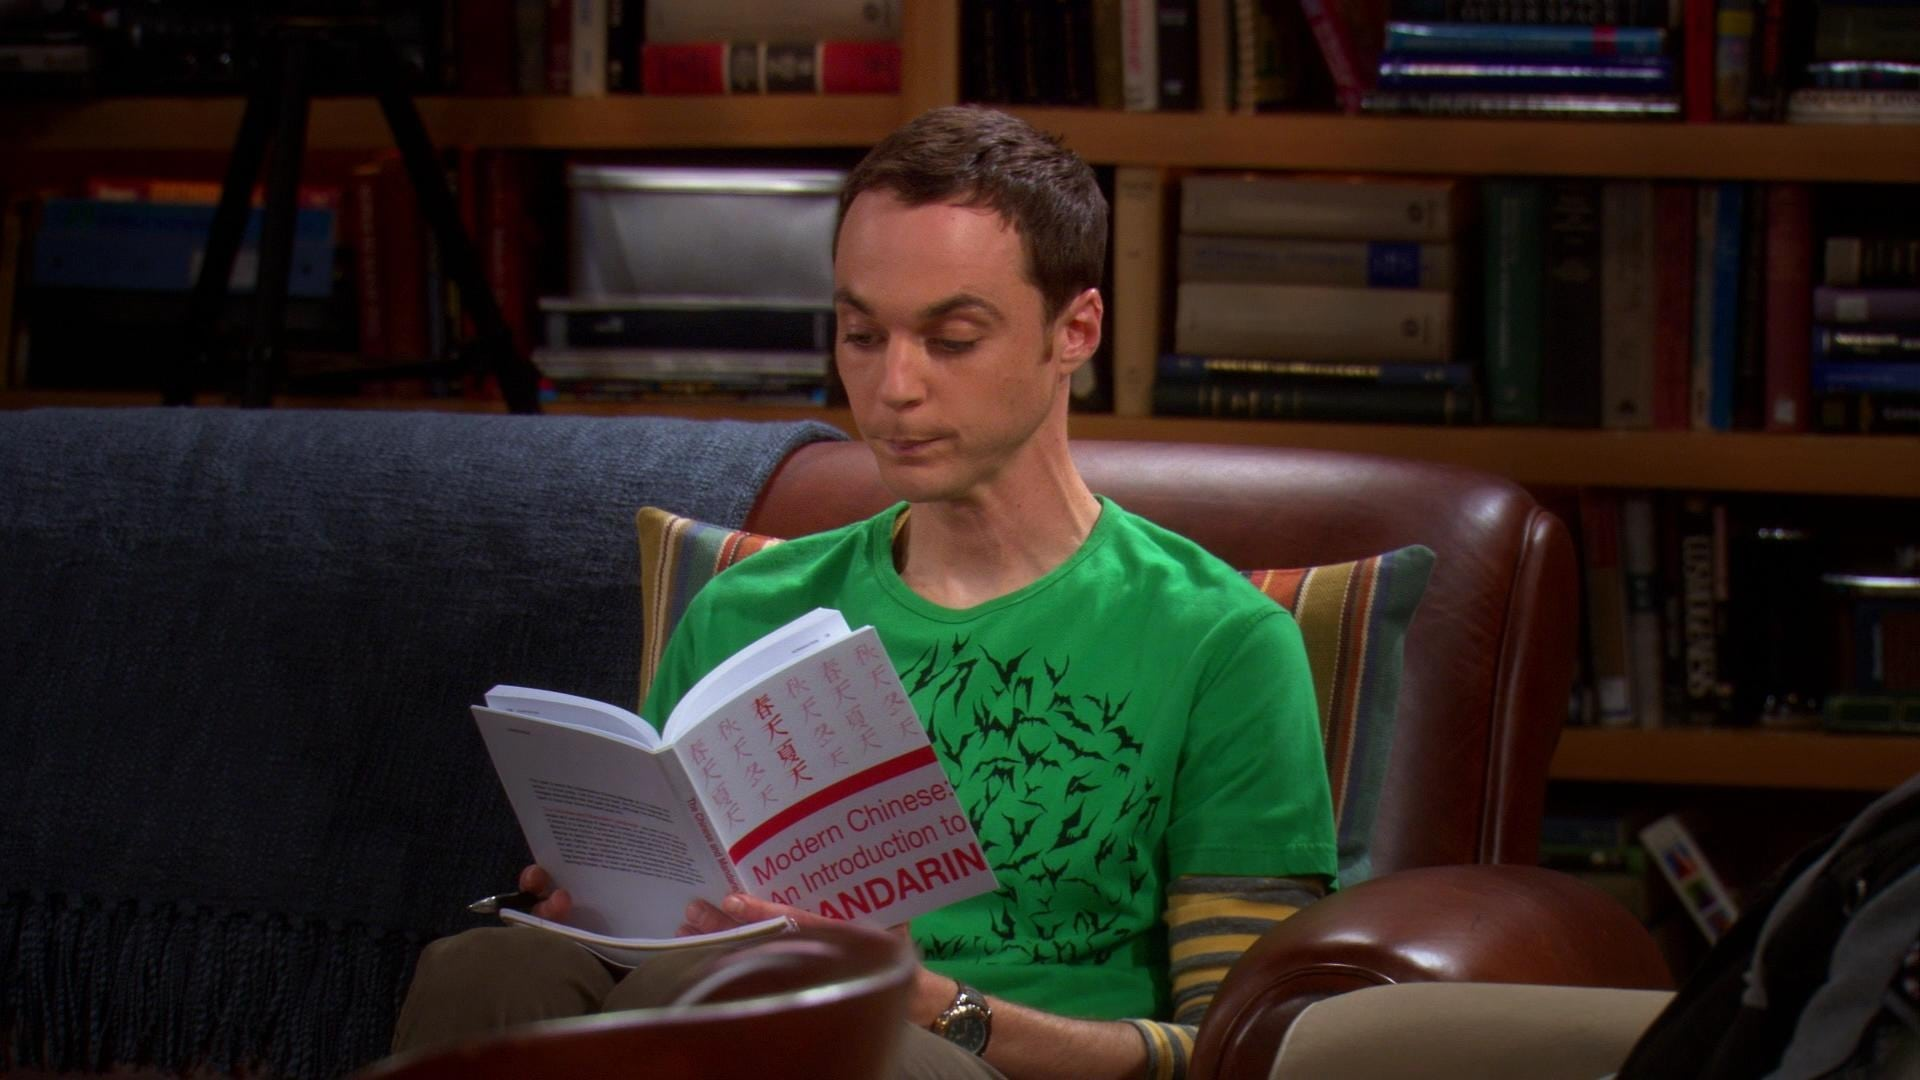 The Big Bang Theory - Season 1 Episode 17 : The Tangerine Factor